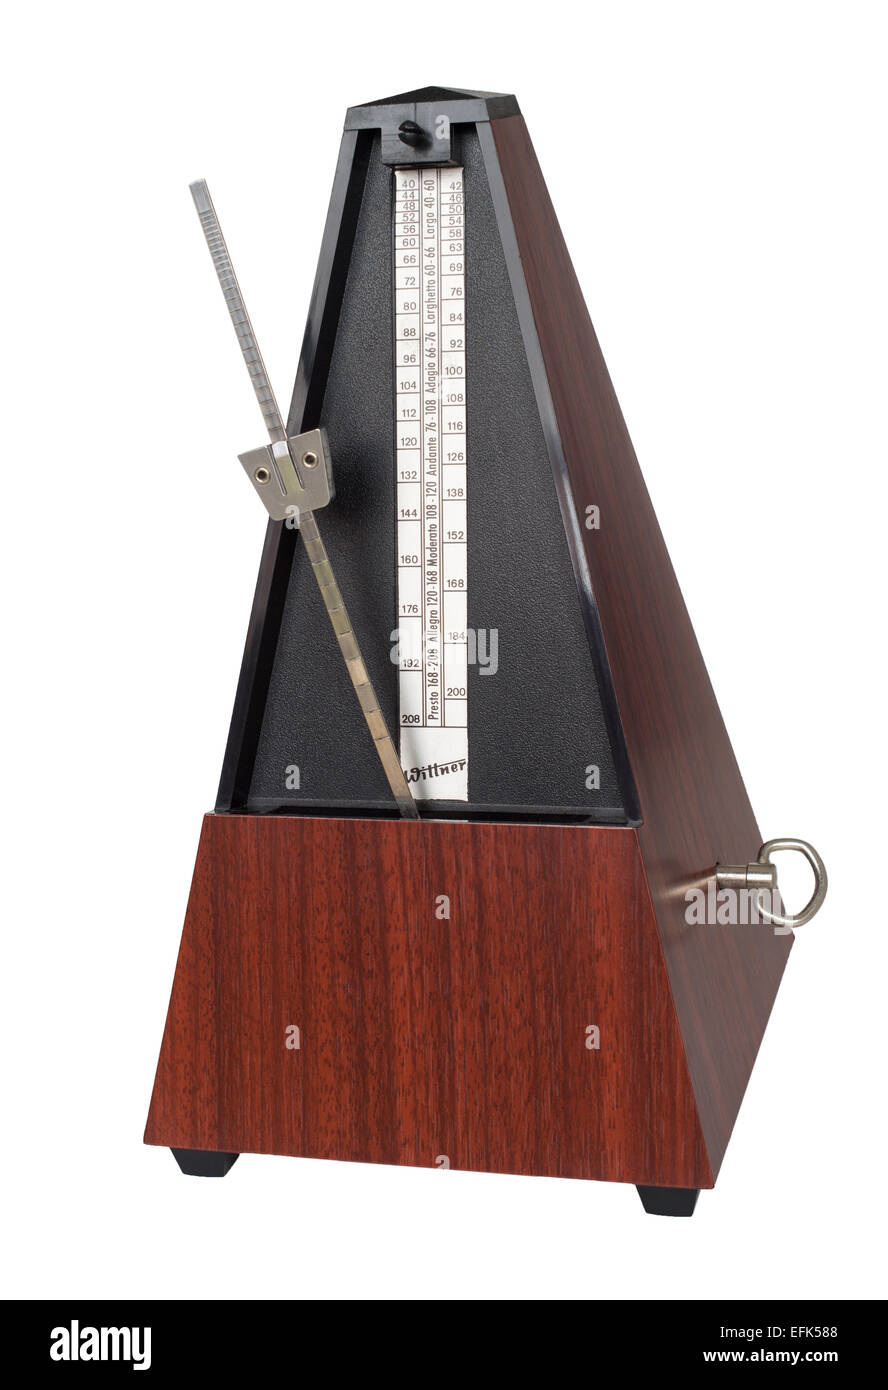 Wittner clockwork traditional metronome isolated on a white background - Stock Image